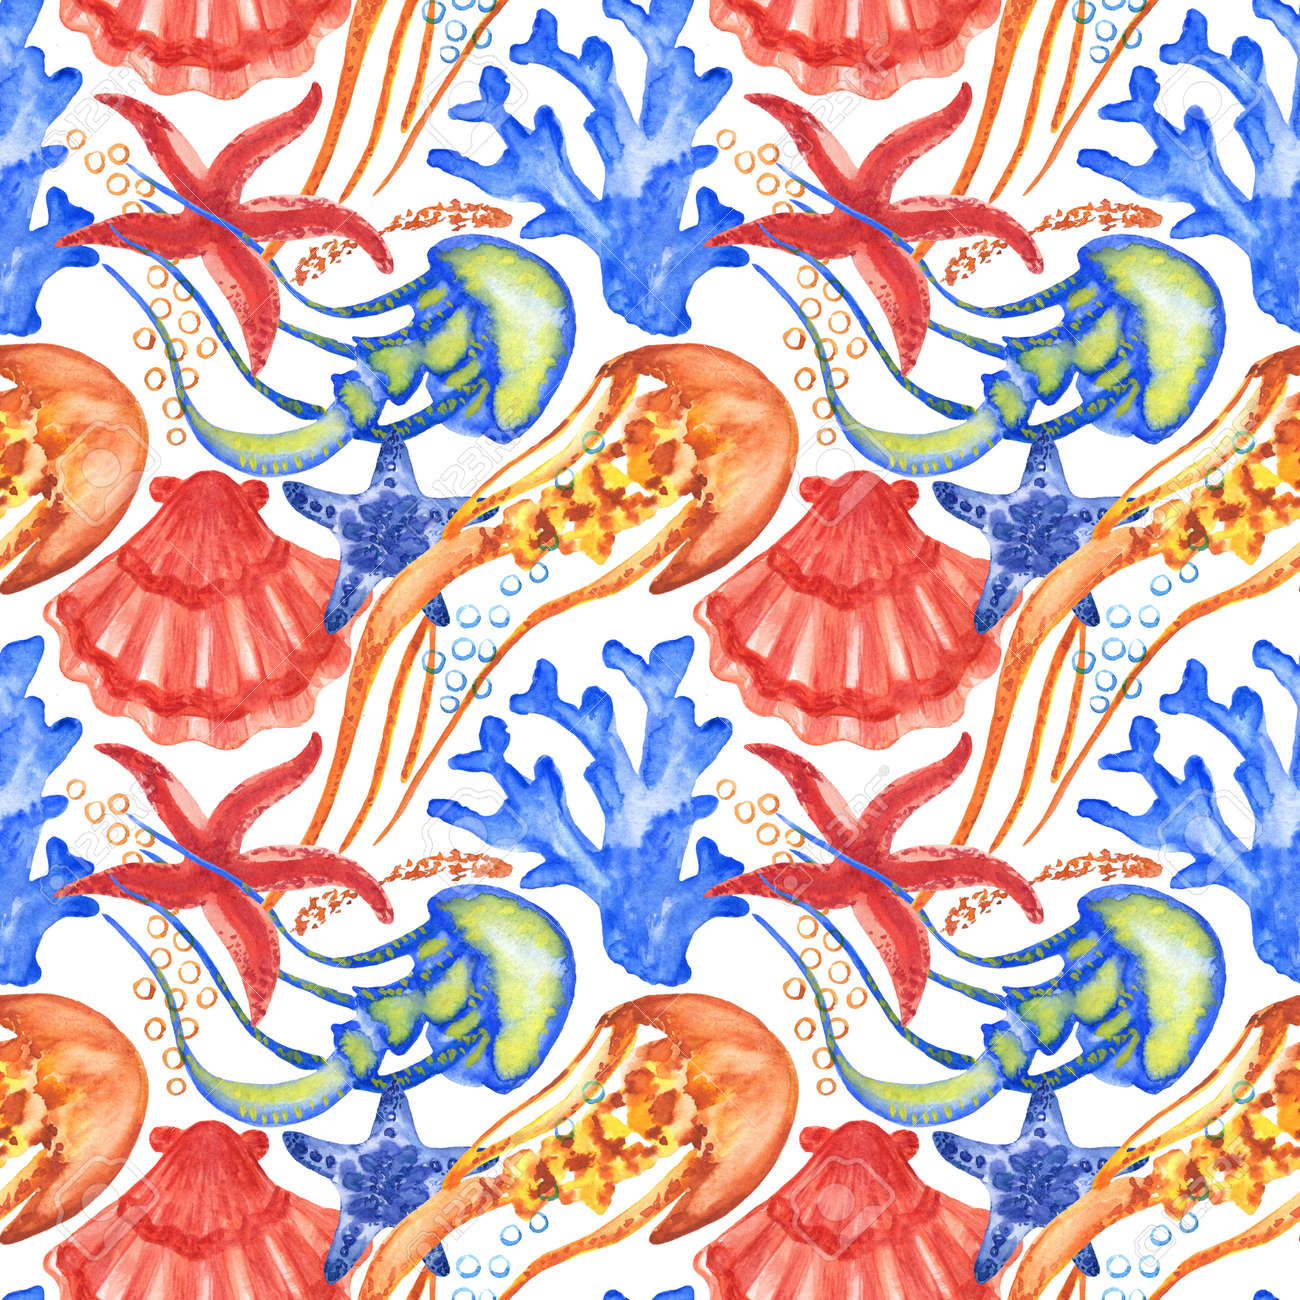 Watercolor seashells and starfish seamless pattern. Illustration of jellyfishes and sea stars for creating fabrics, textile, decoupage, wallpapers, print. Isolated on white background. - 167408766